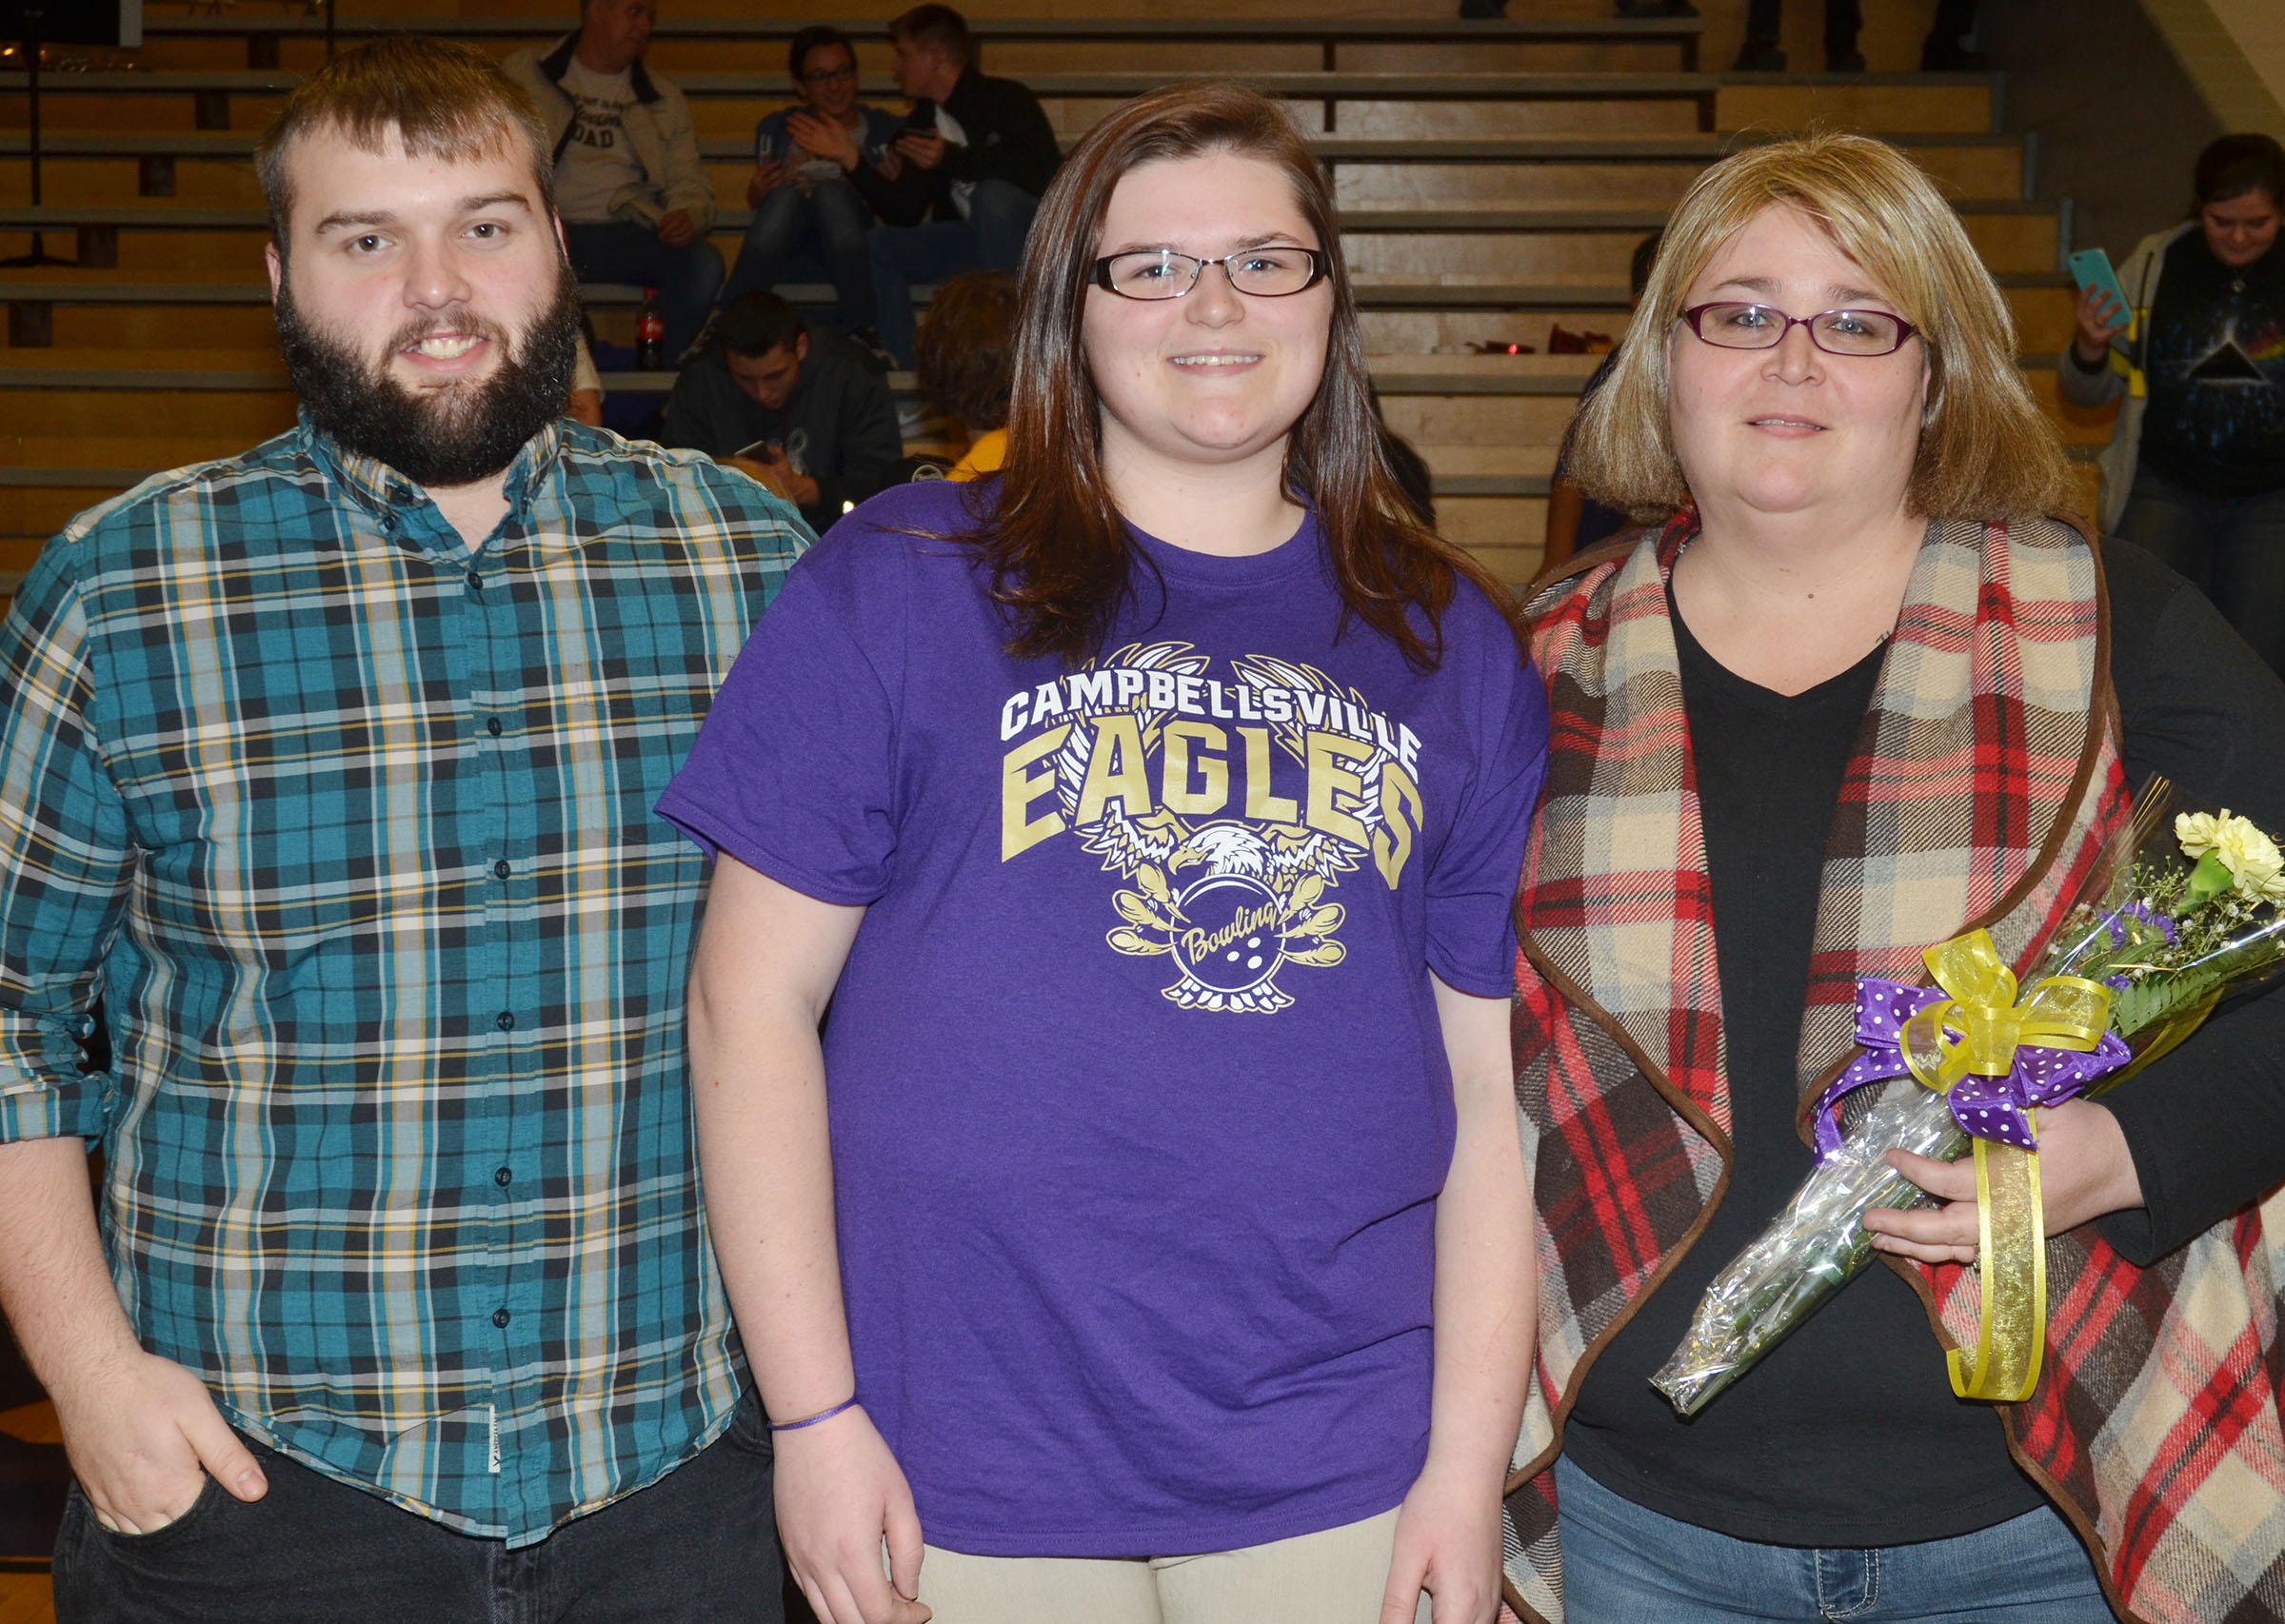 CHS senior bowling team member Vera Brown is honored. She is pictured with her mother Tonya Tate and stepfather Andrew Tate.